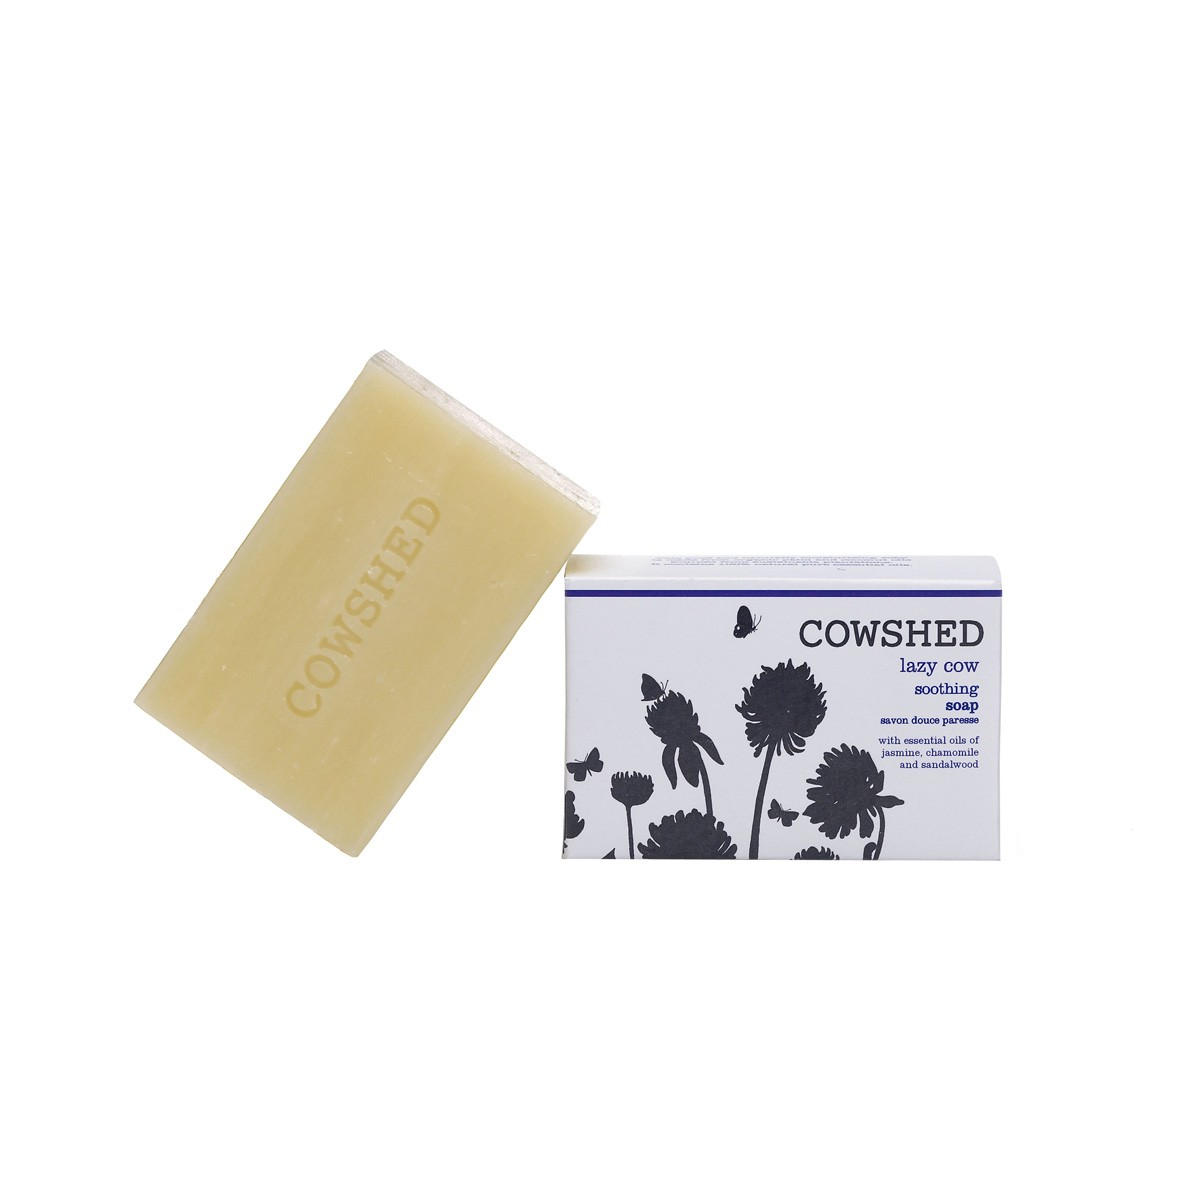 Cowshed Lazy Cow Soothing Soap